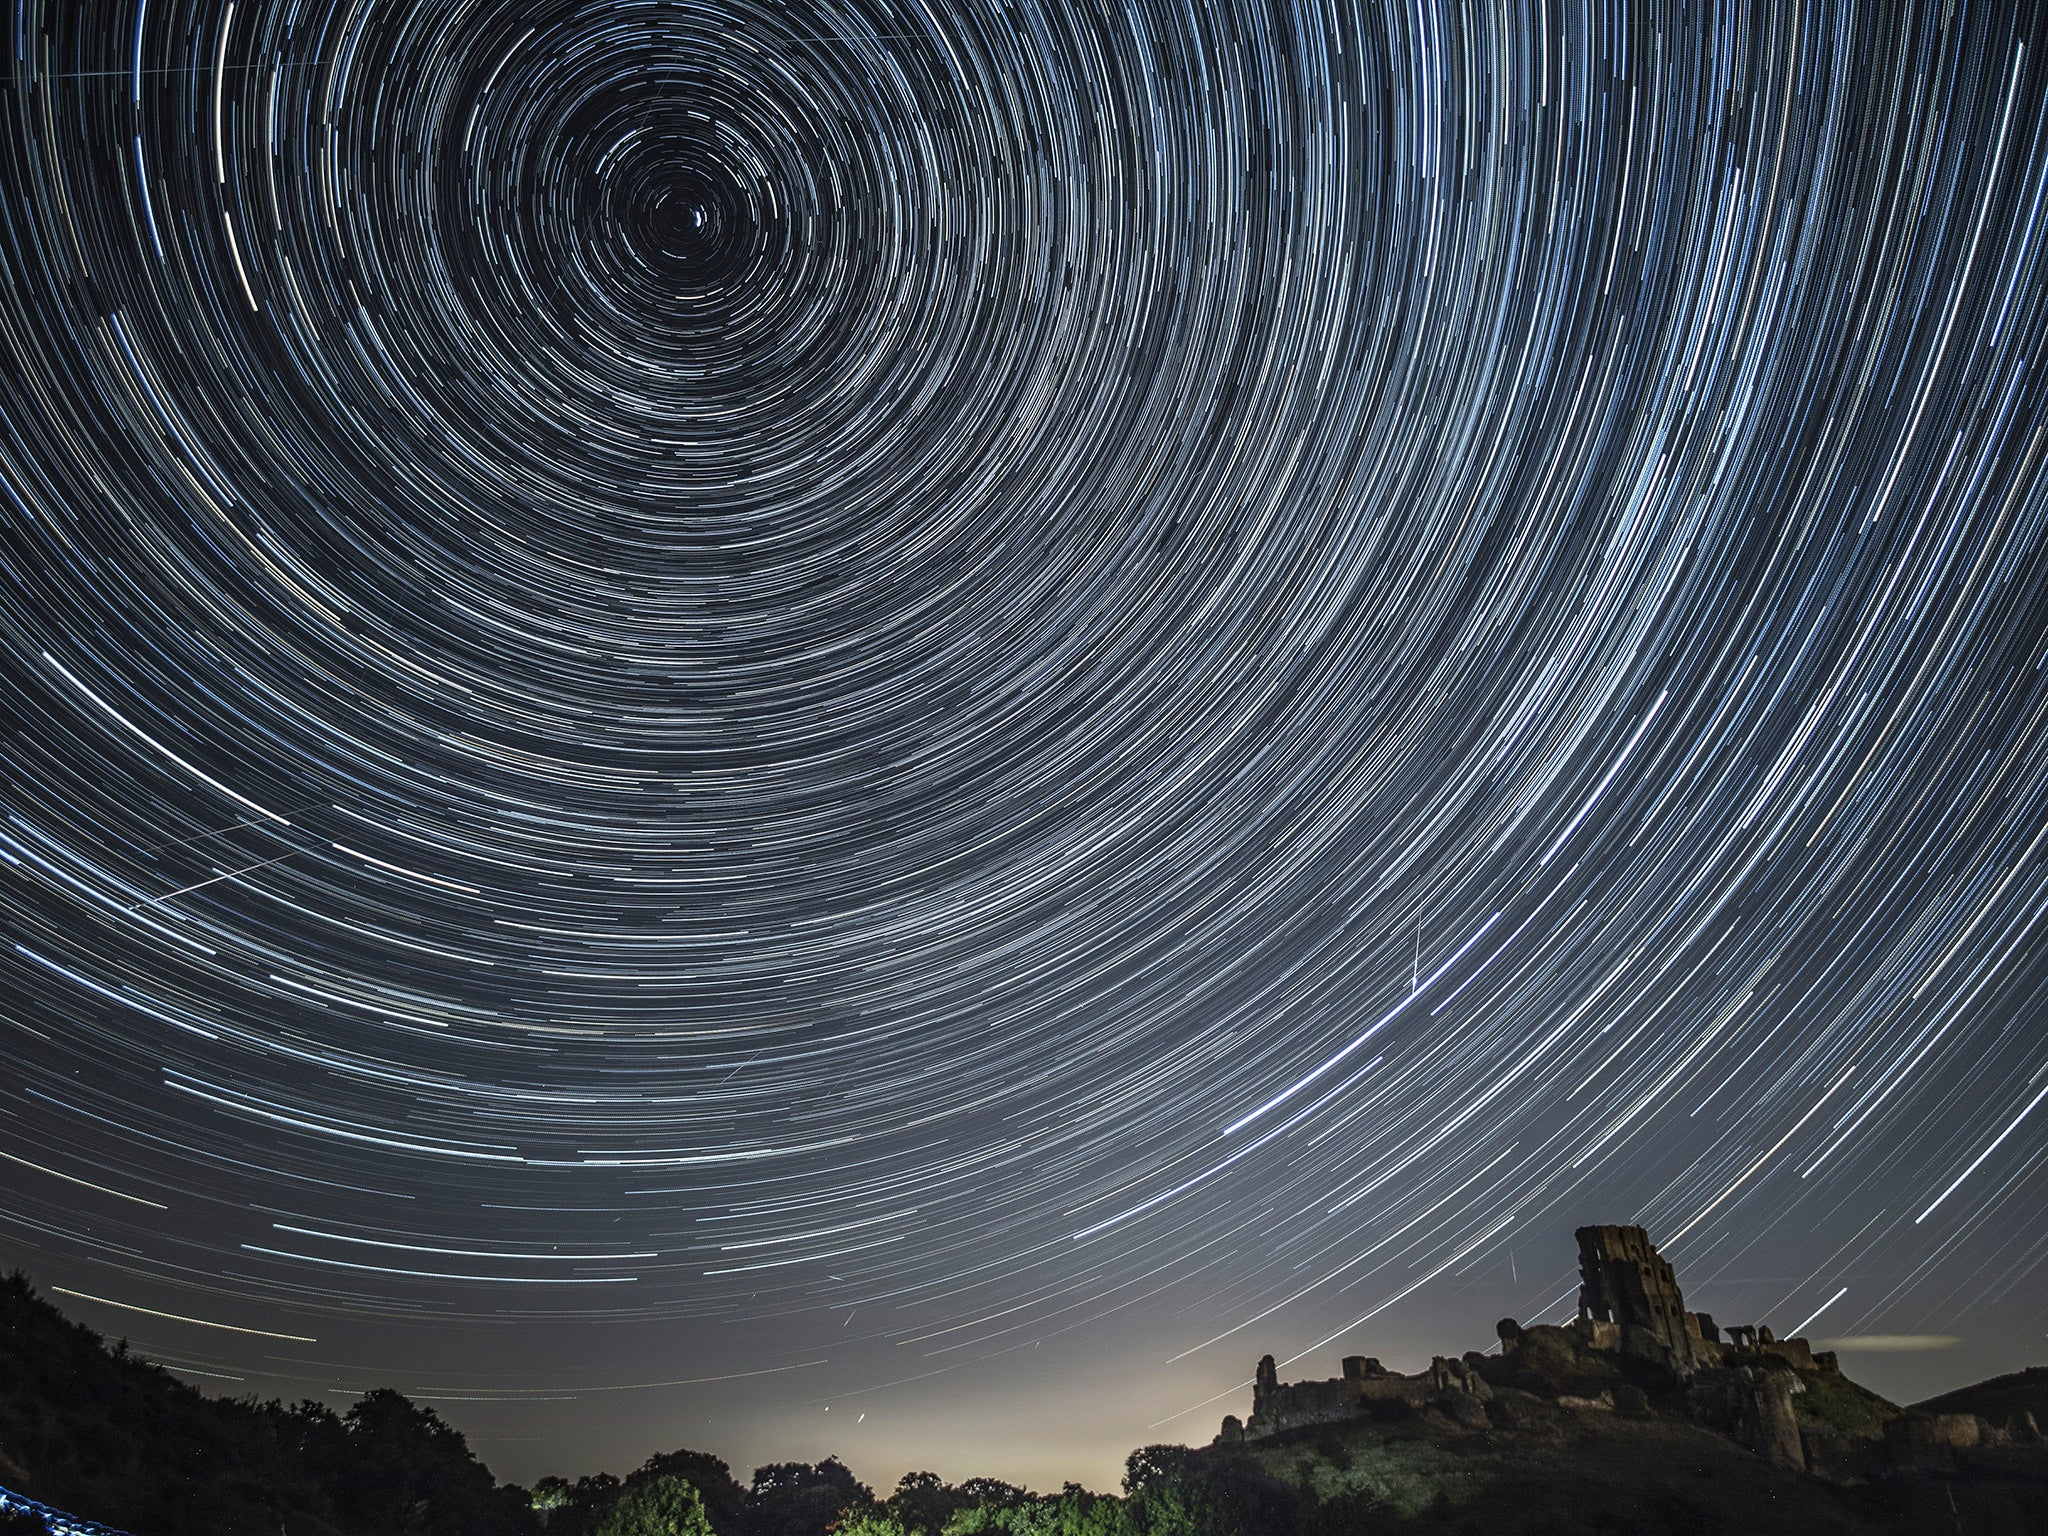 How to watch the Perseid Meteor shower, one of Earth's most spectacular shows